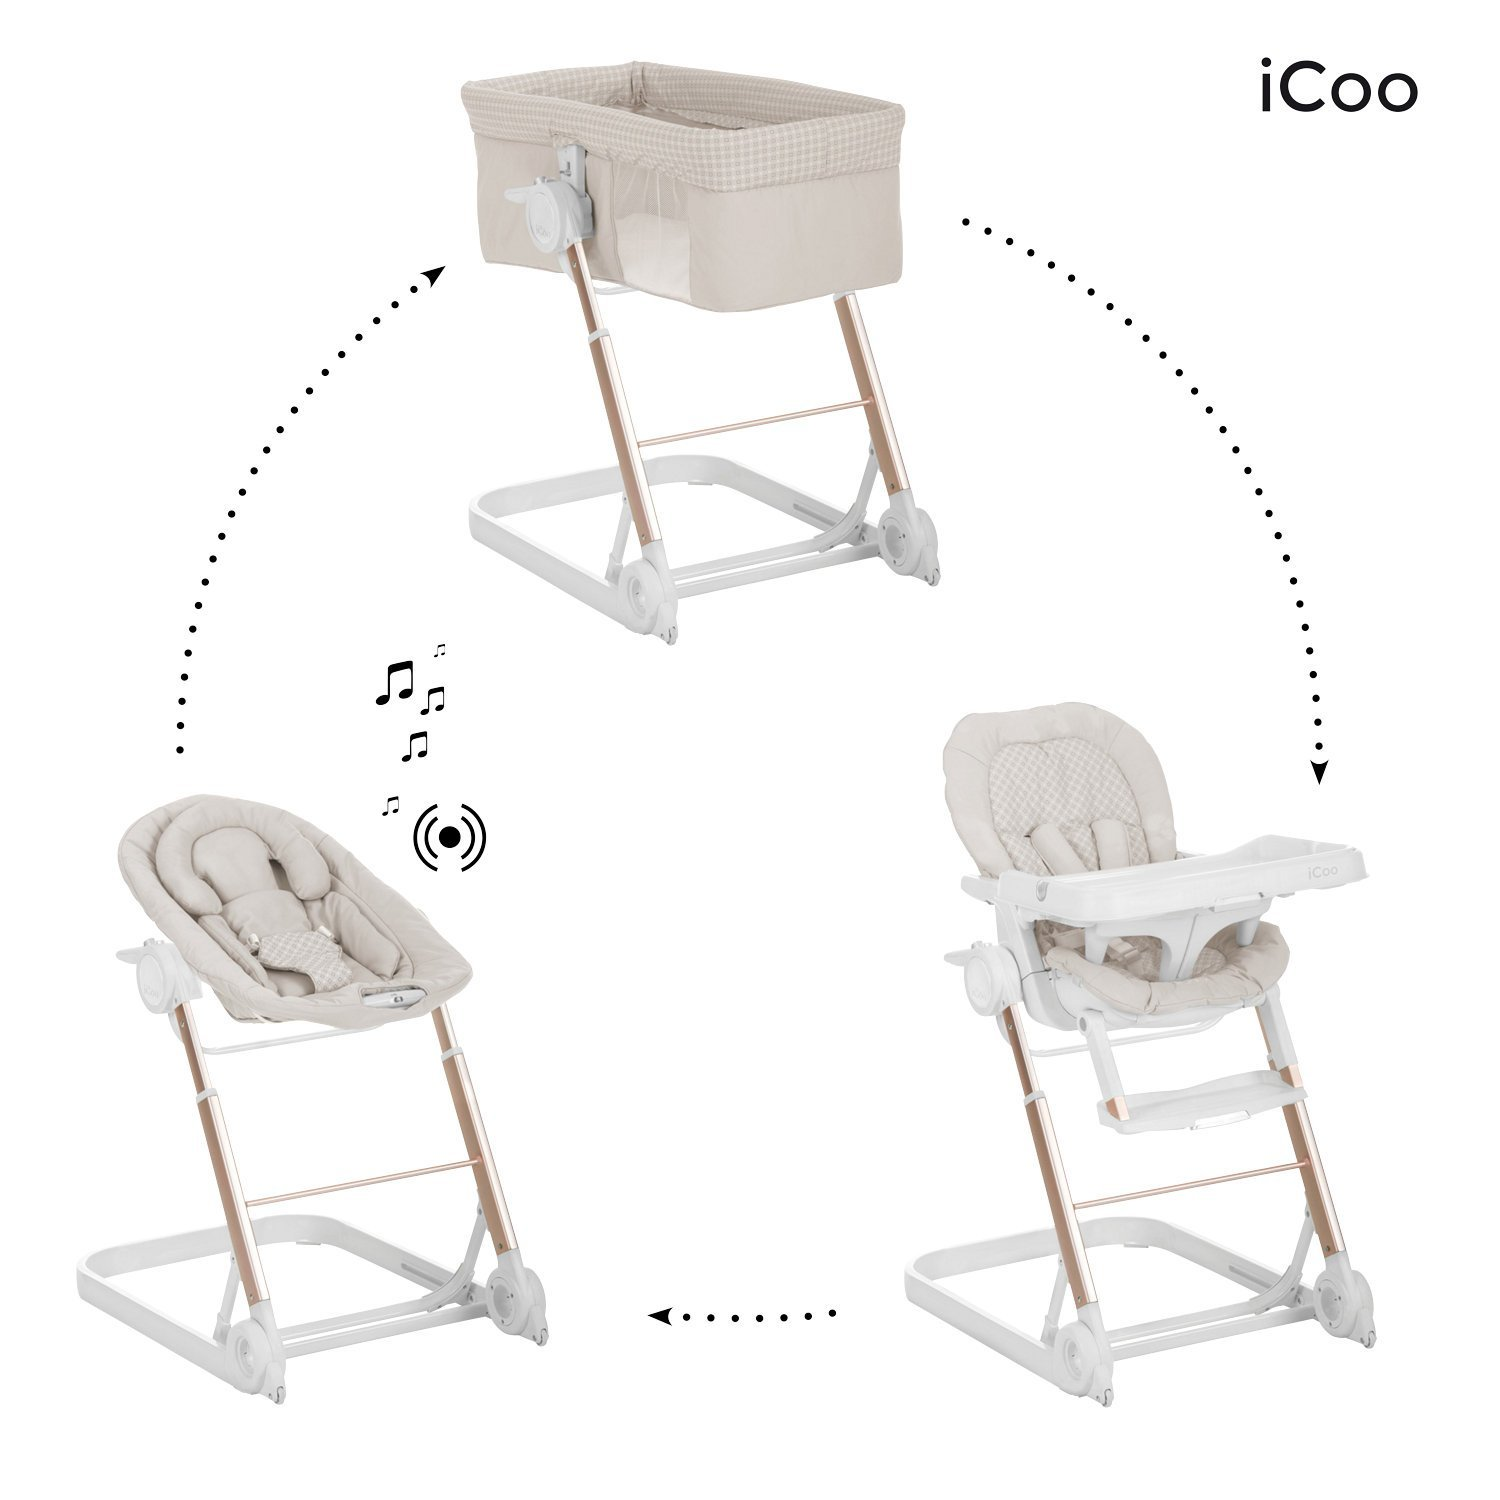 Icoo 123 Grow With Me, Bouncer, Crib & Highchair 3 in 1 Beige